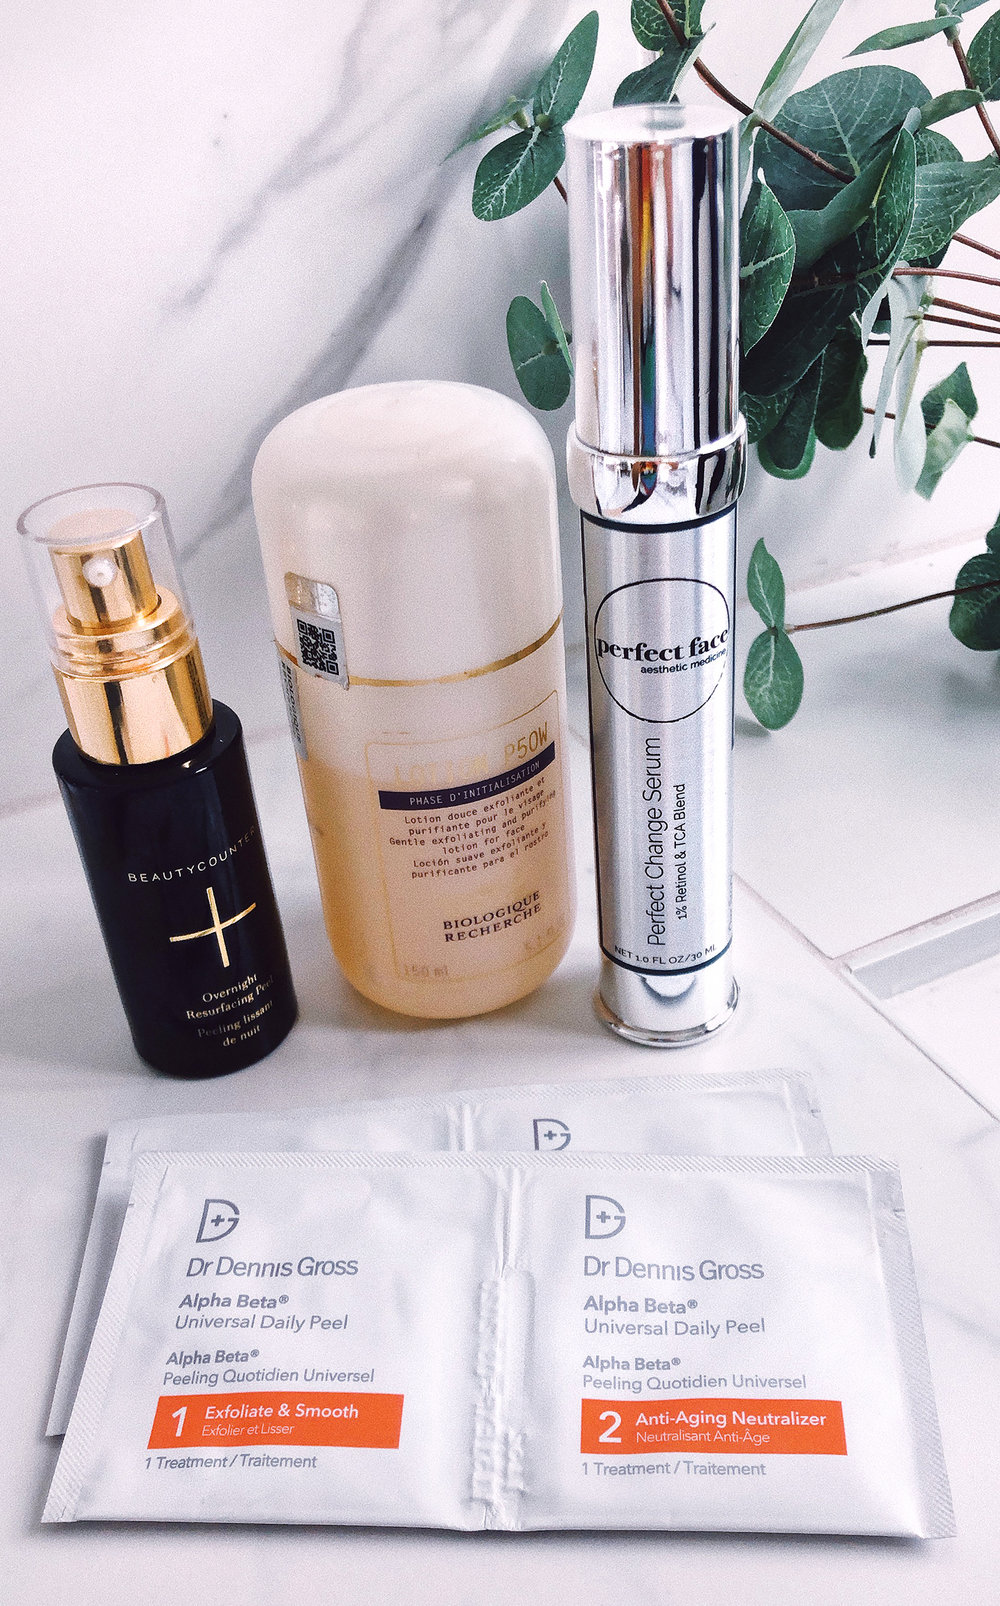 Anti Aging Skincare Peel Exfoliators Beauty Counter DrZoe Perfect Face Retinol Biologique Recherche Lotion P50W